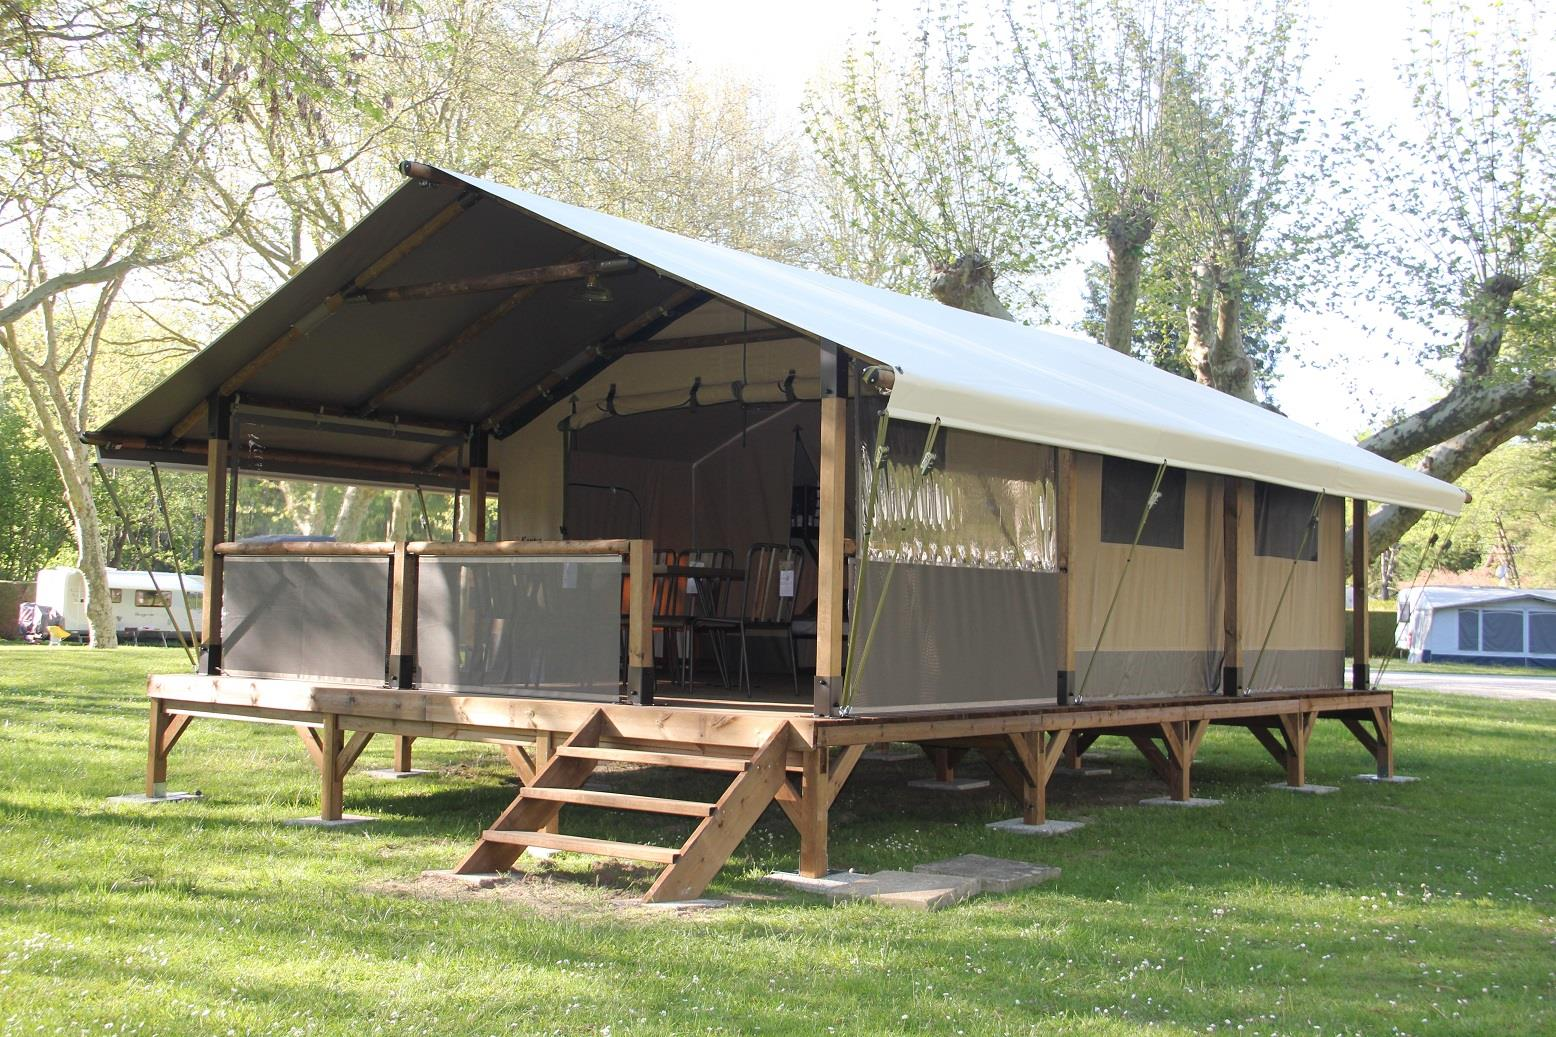 Huuraccommodatie - Lodge La Dame Jouanne May 2019 (Without Toilet Blocks) - Camping Ile de Boulancourt